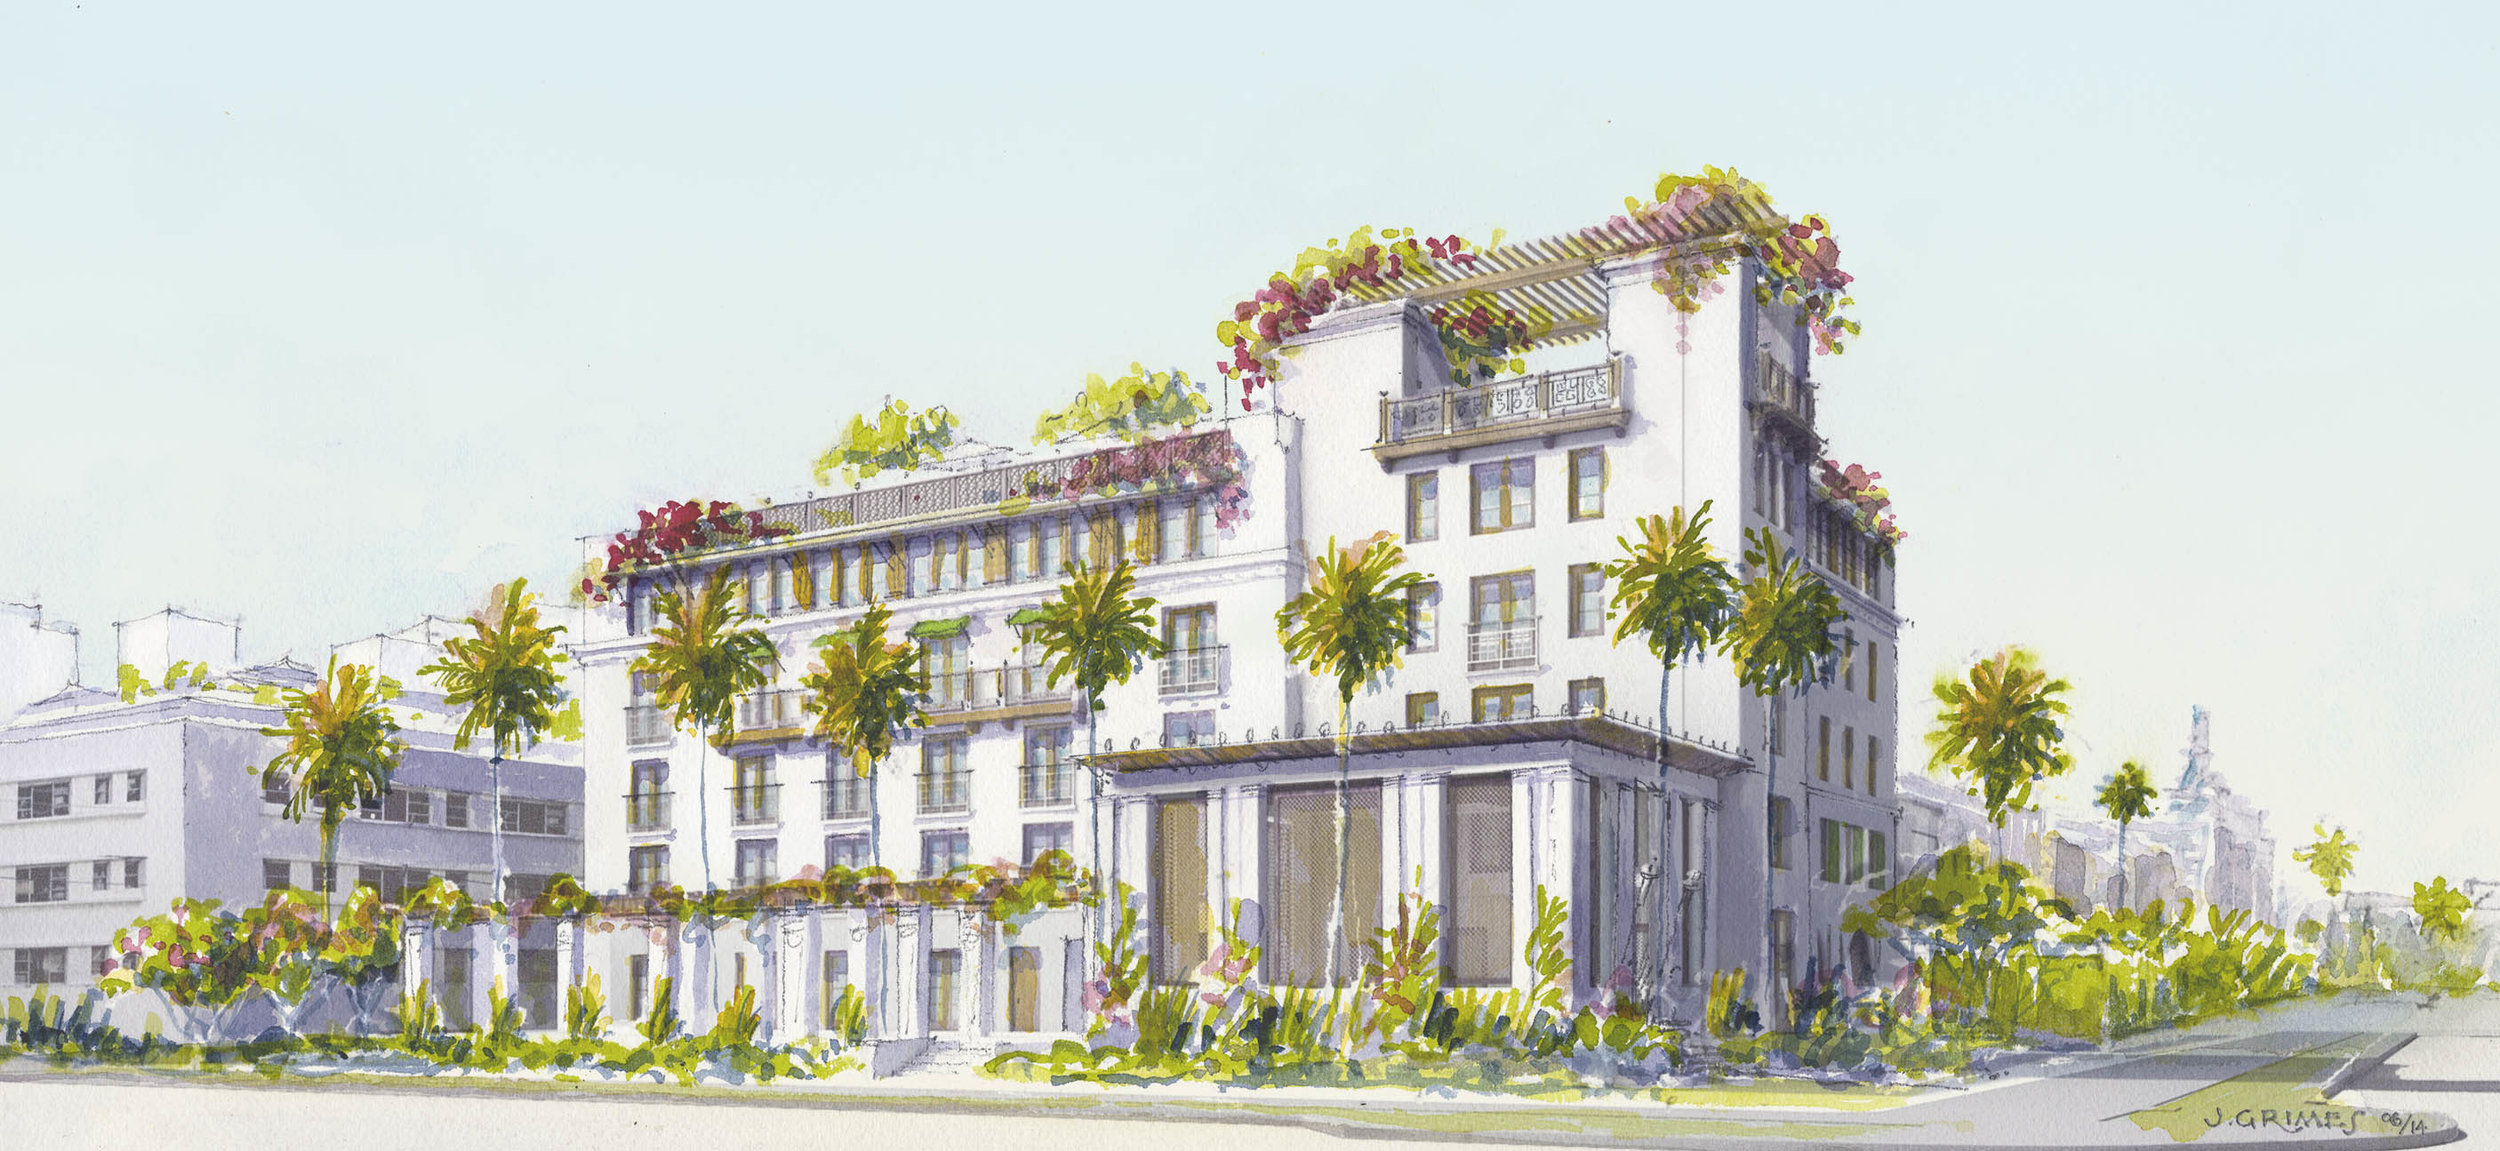 A Villa Kerylos inspired oasis in South Beach, complete with roof pool terrace, dining garden and impluvium roofed lobby made perfect sense to me. The Planning & Zoning Department loved it, but rejected the design, complaining it wasn't modern enough. Apparently people would be confused that it wasn't old. I moved out of Florida for a reason.